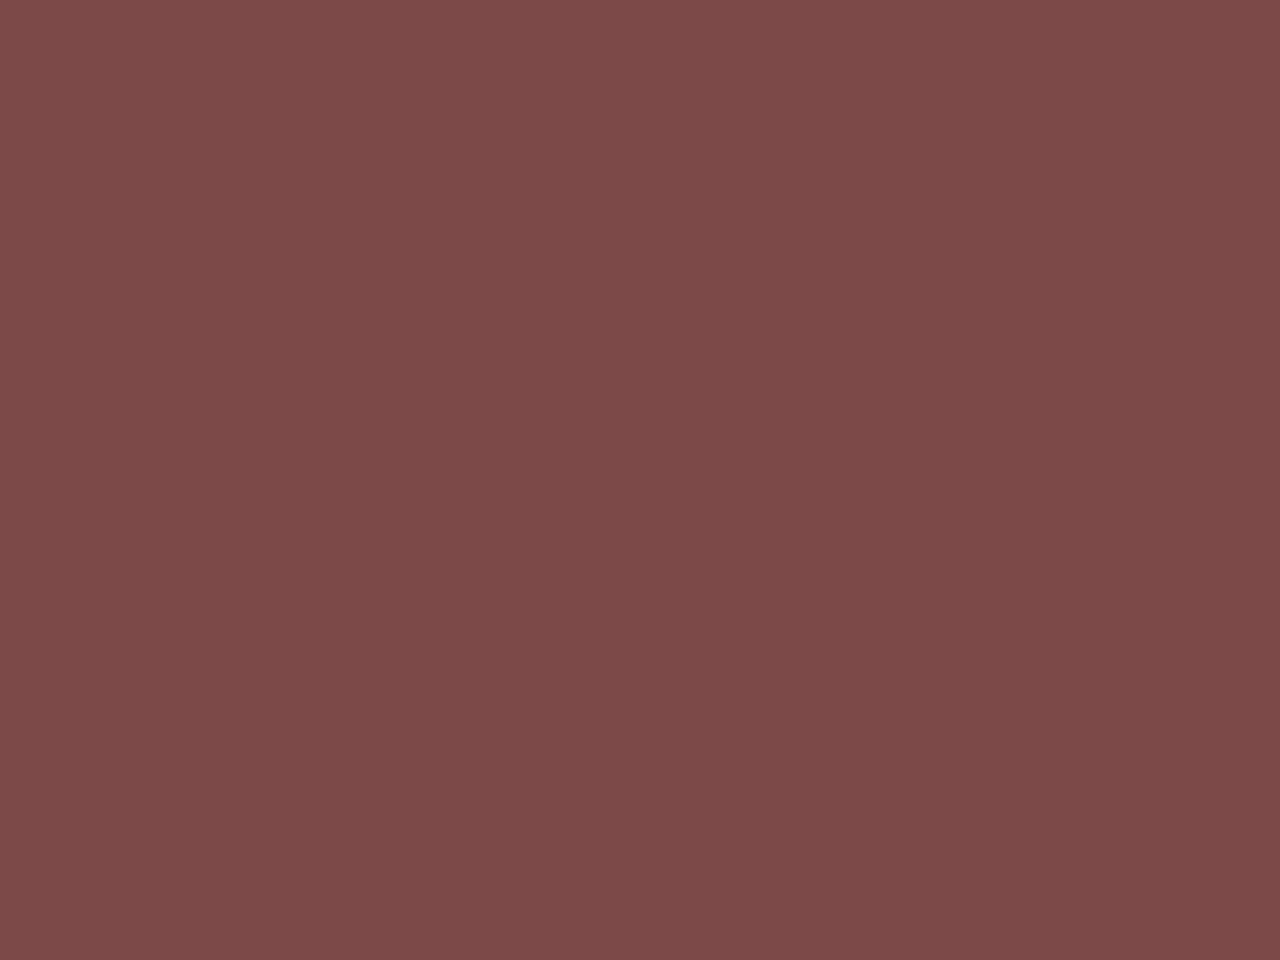 1280x960 Tuscan Red Solid Color Background